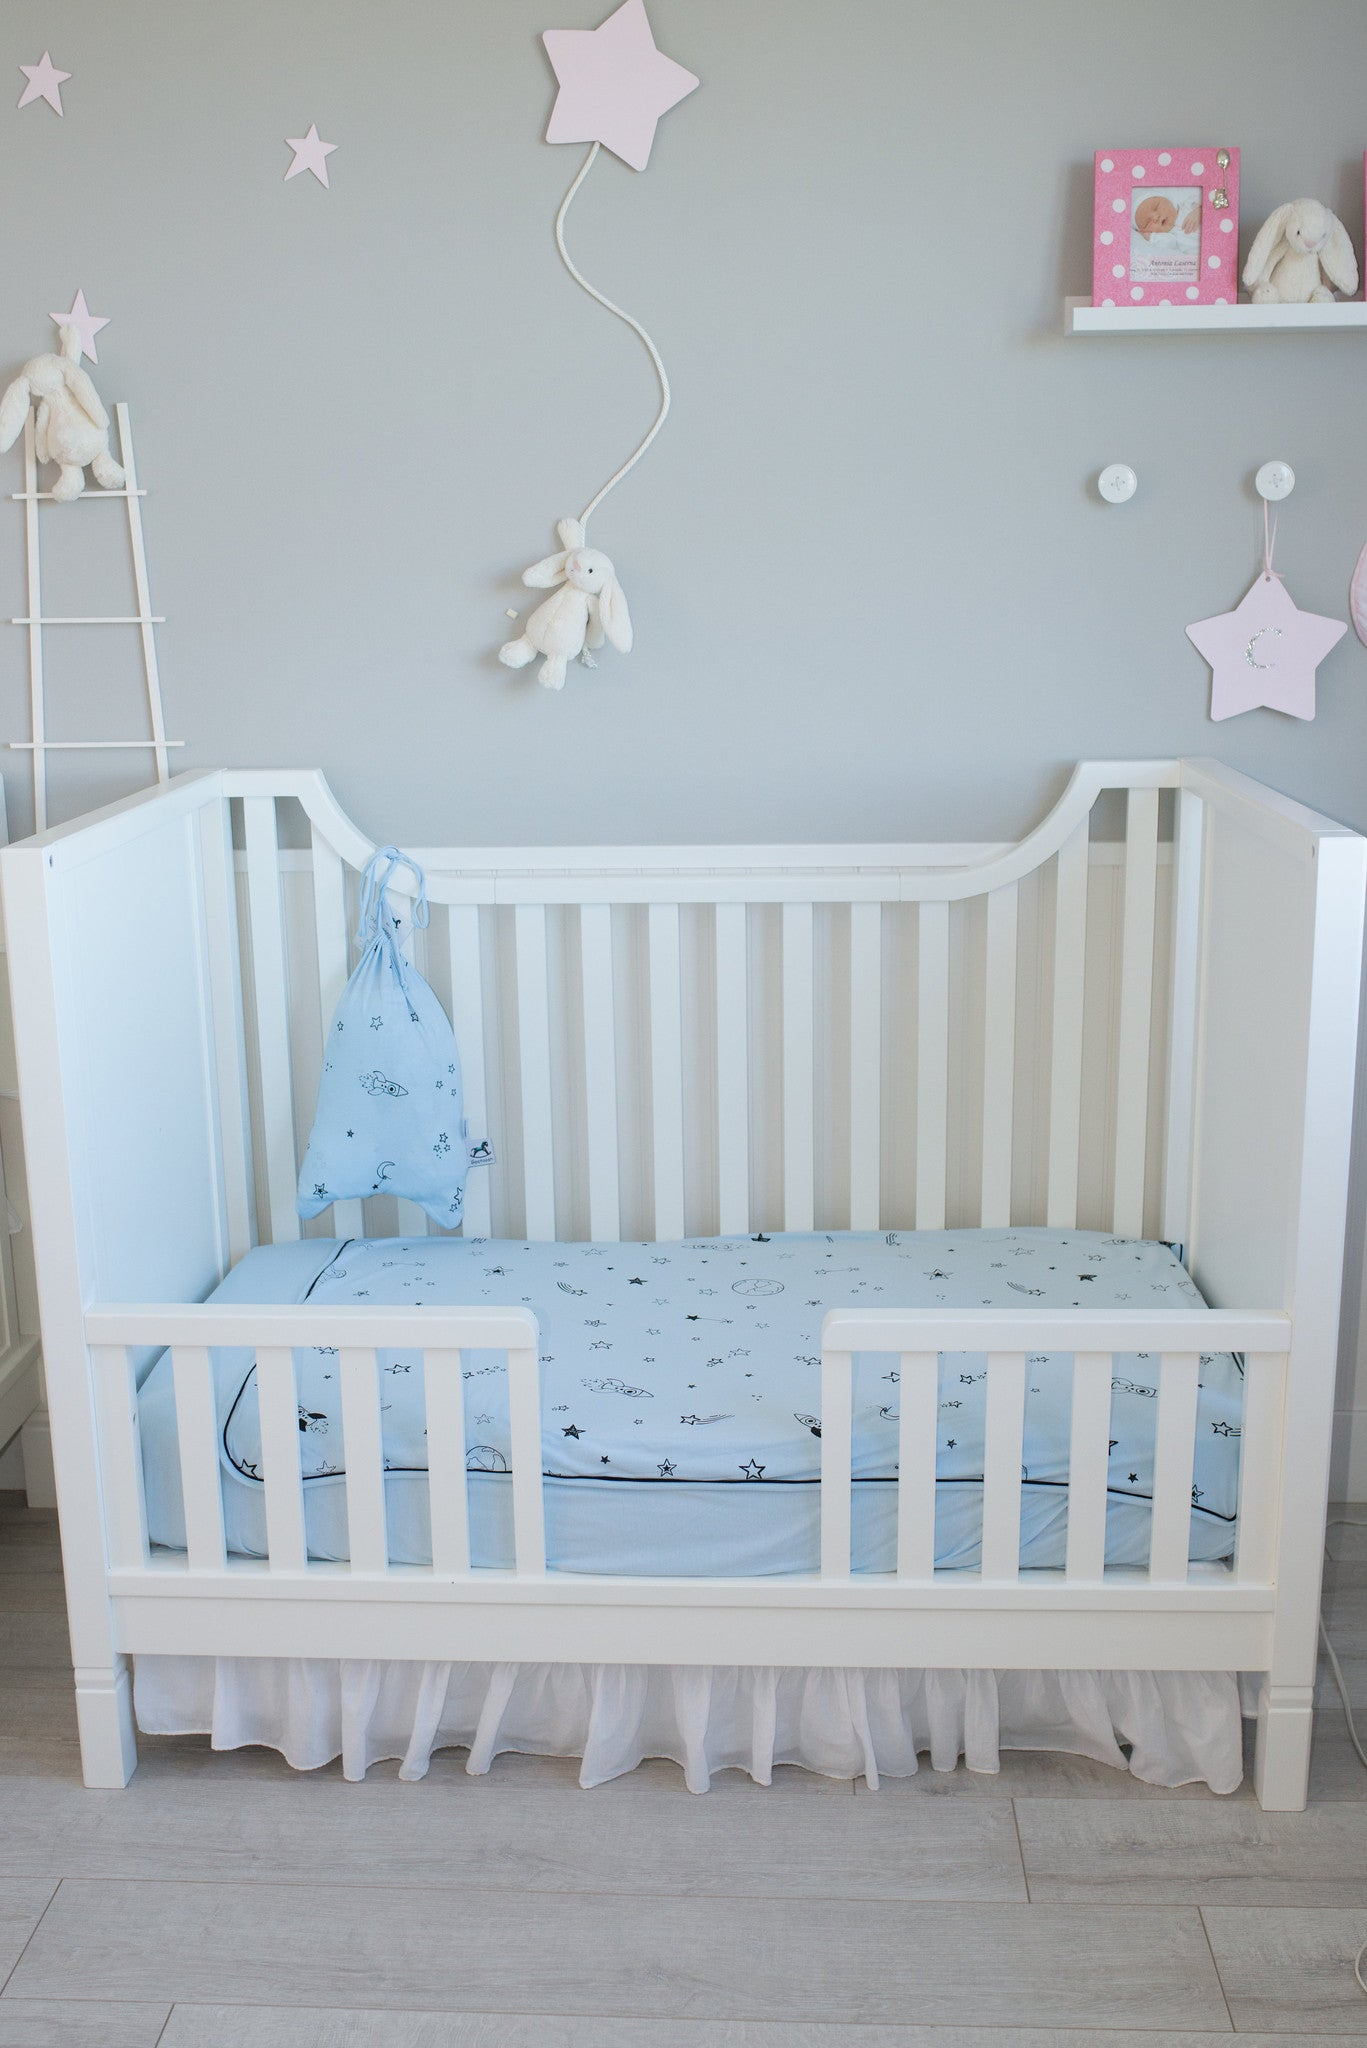 ideas gender nursery famous bedding unisex crib barn pottery neutral bed baby